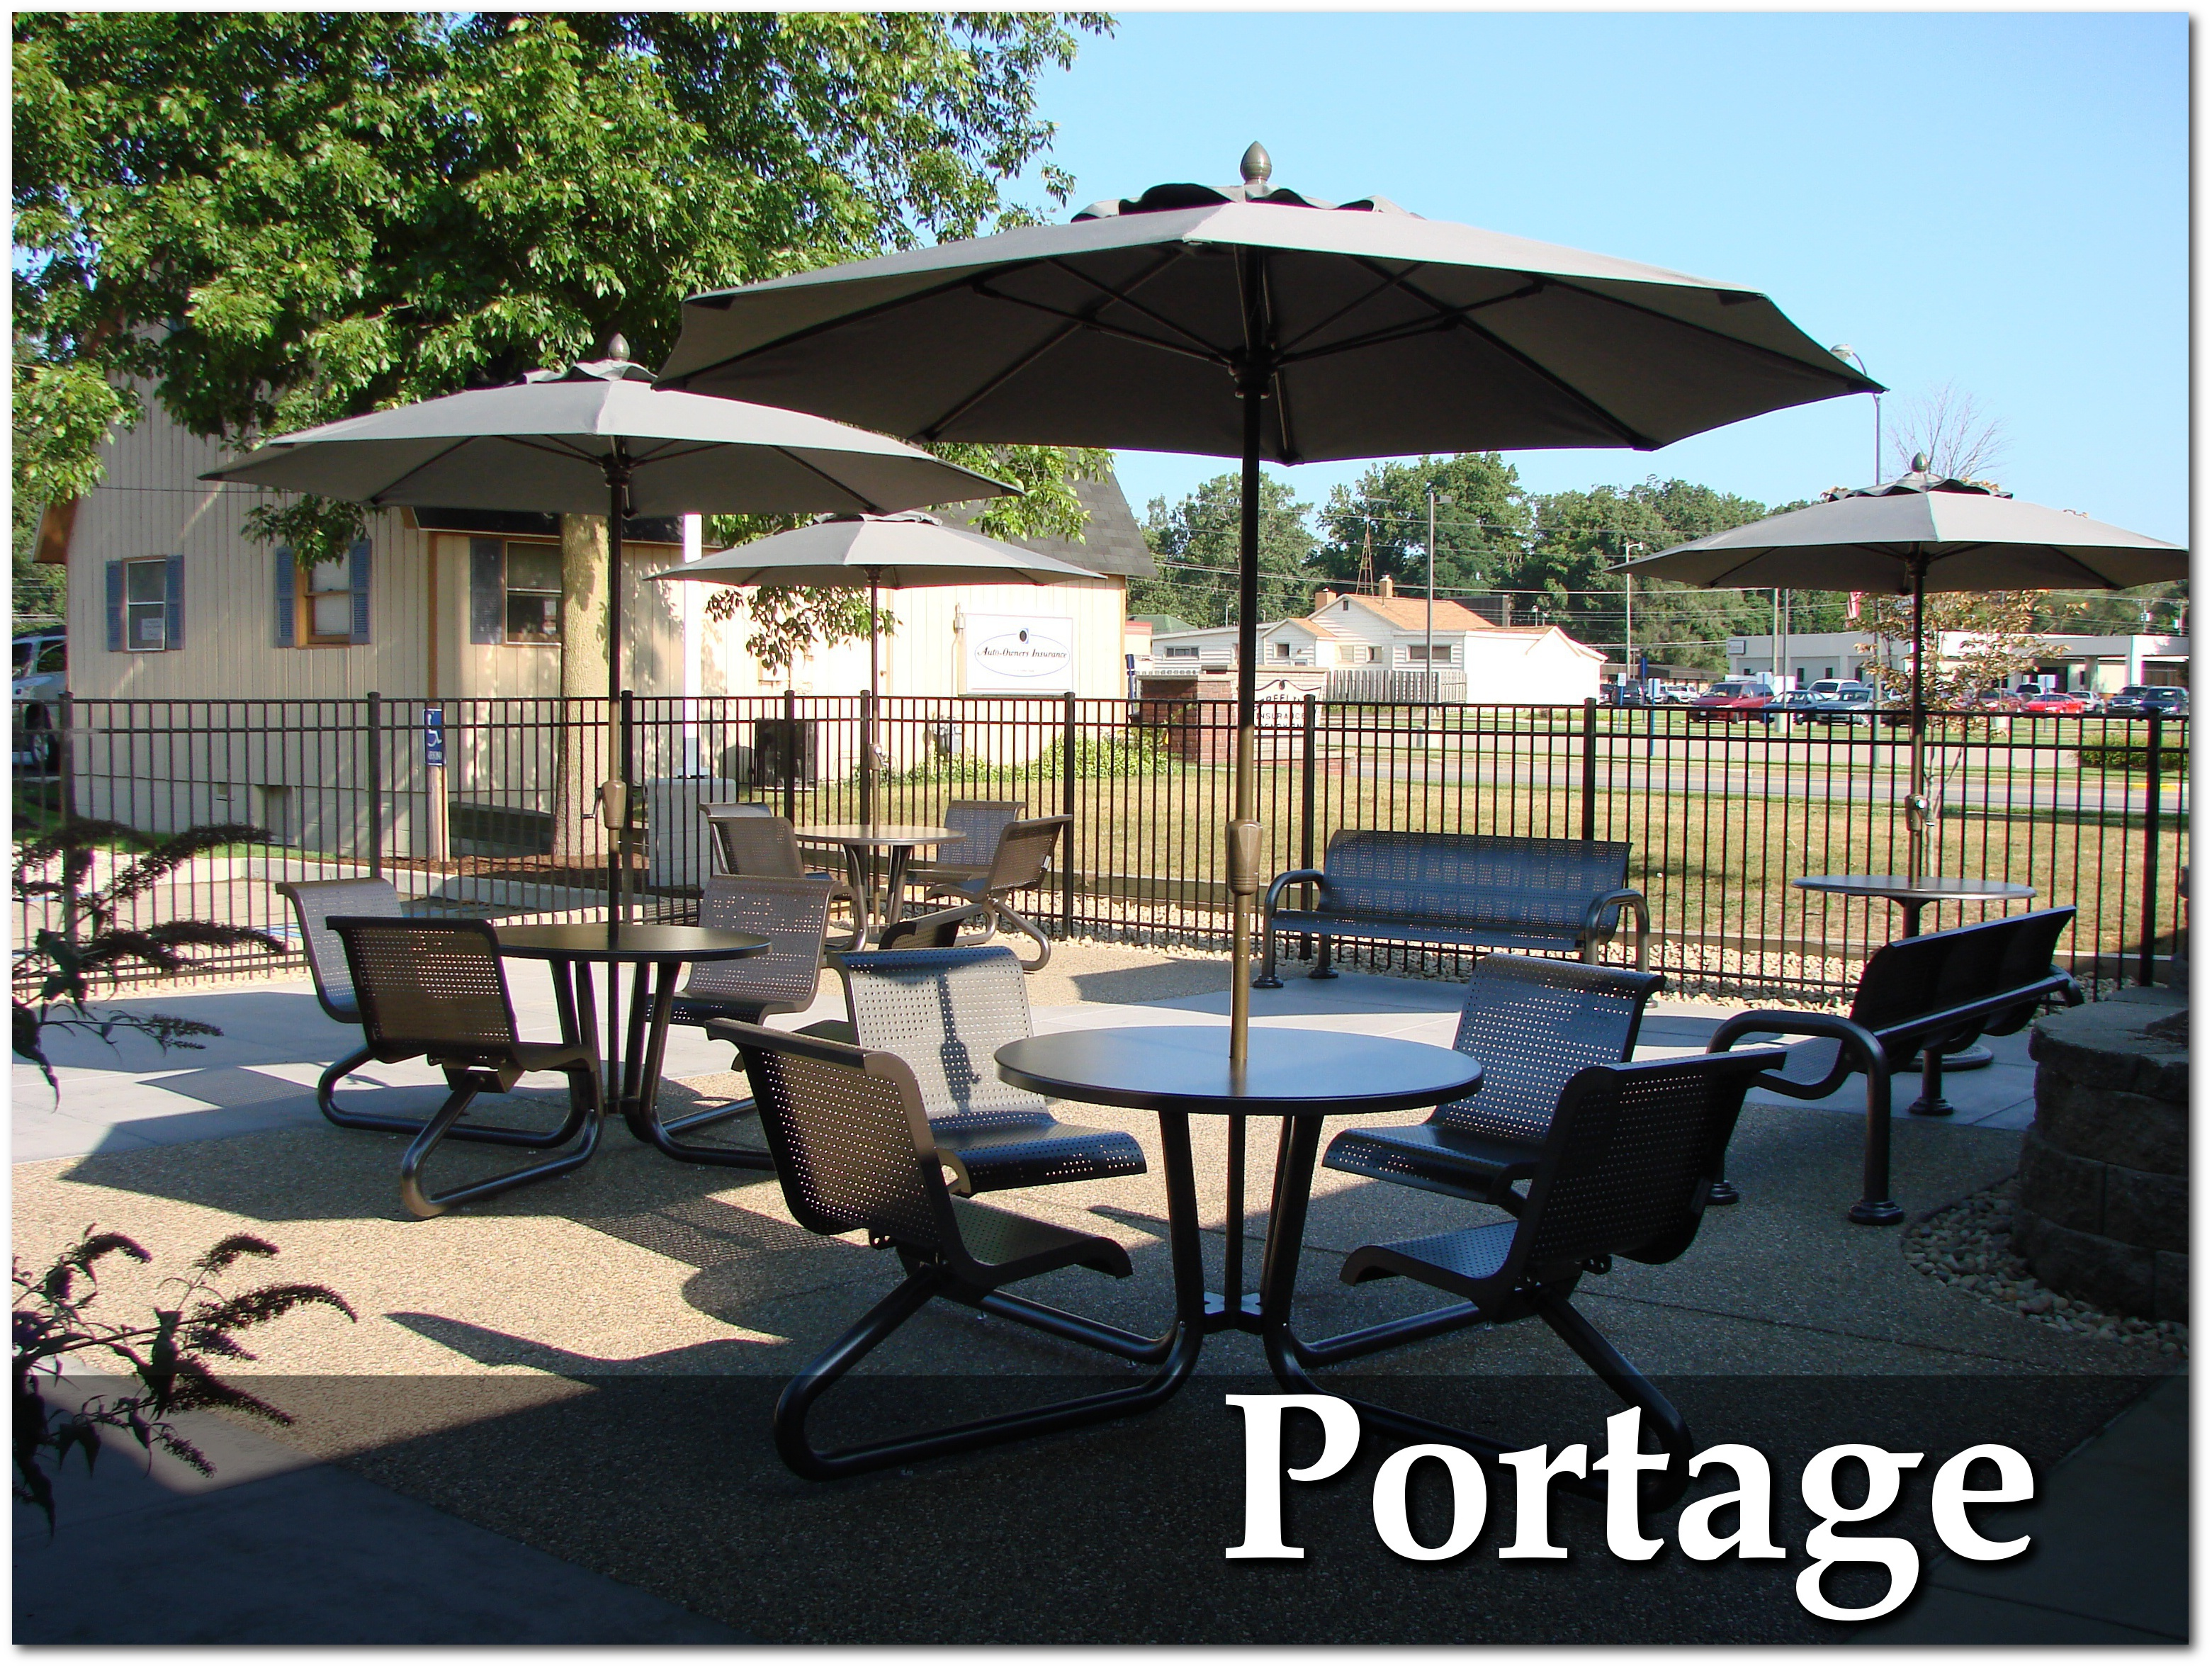 Portage Collection Overview